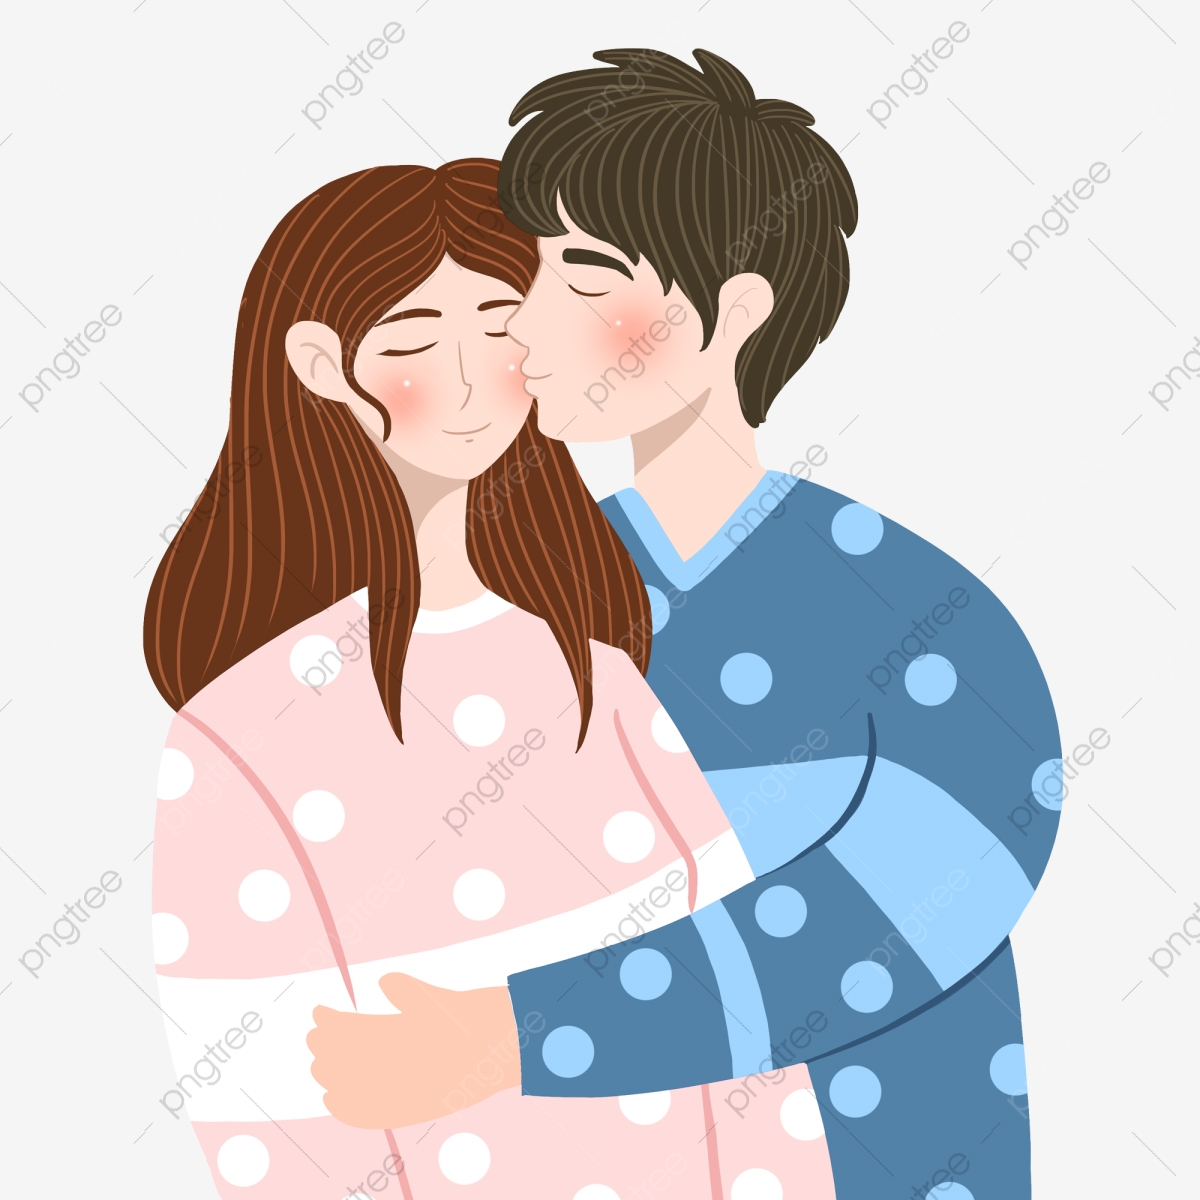 Couple Kiss Png Images Vector And Psd Files Free Download On Pngtree